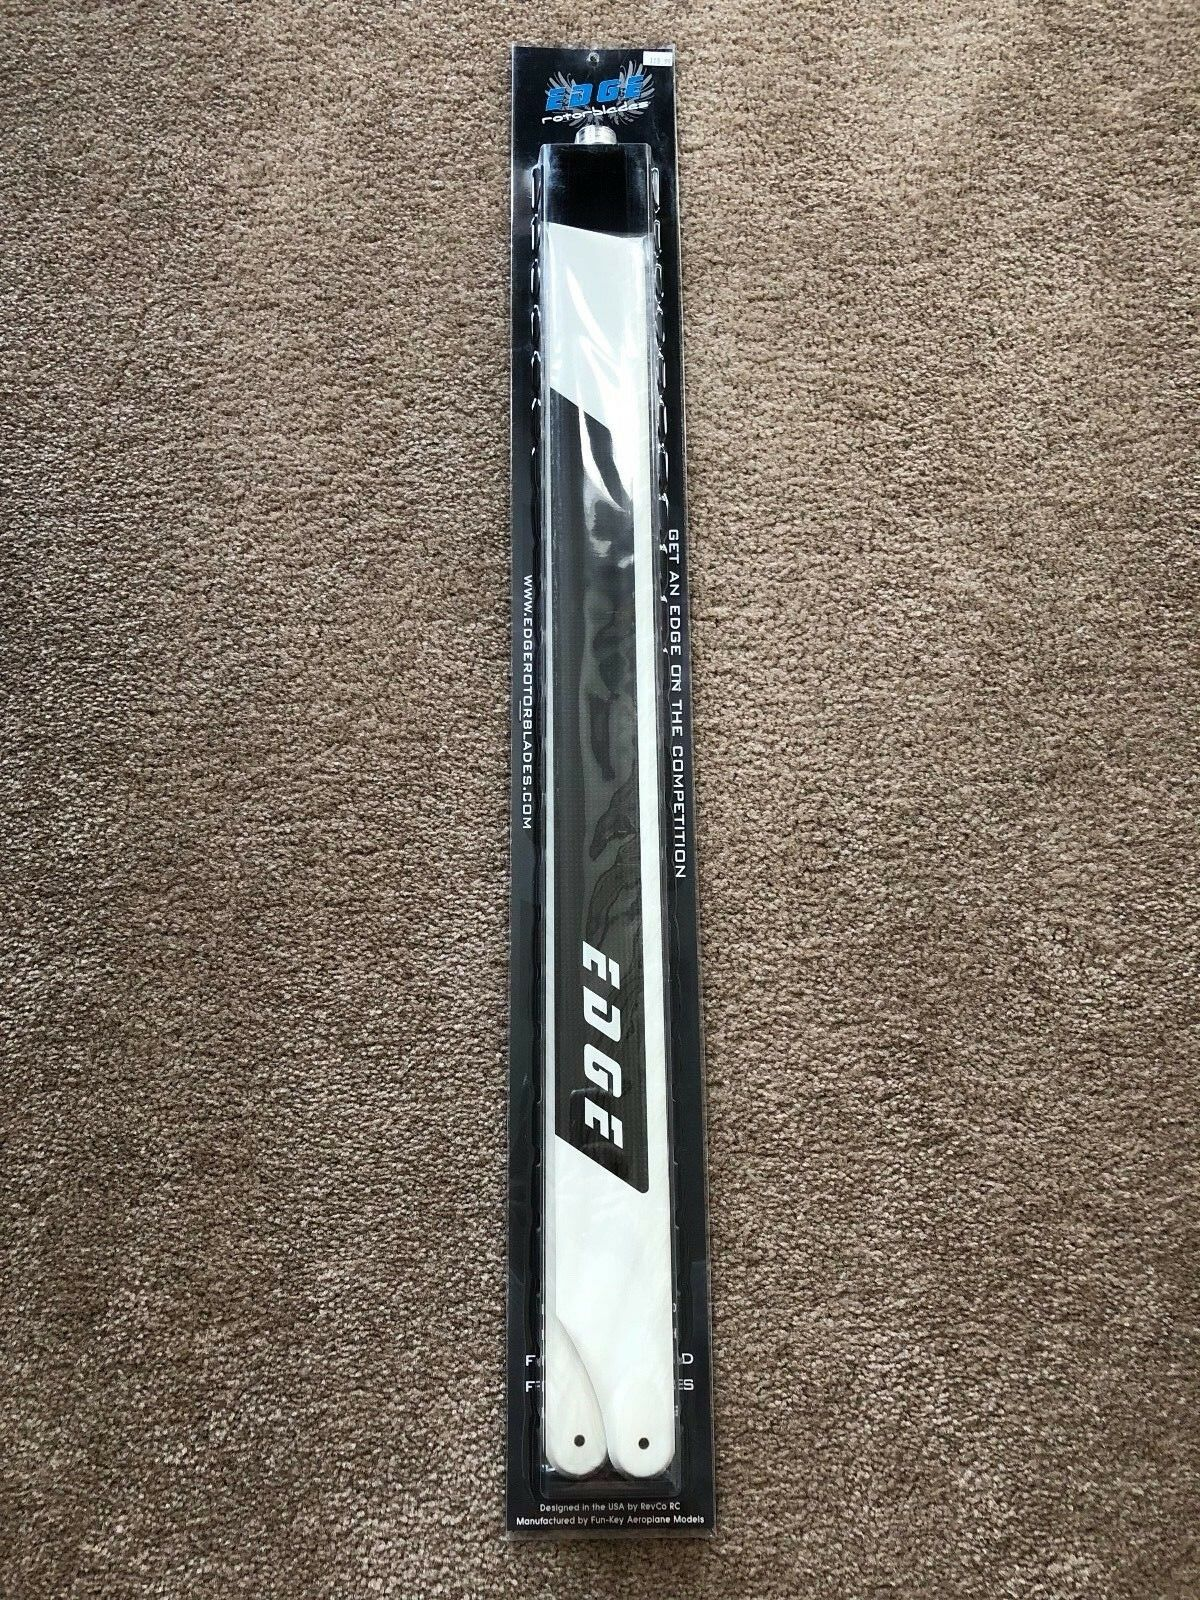 Brand New Edge redorblades LE-693FB 693mm Premium CF Blades - Flybar Version